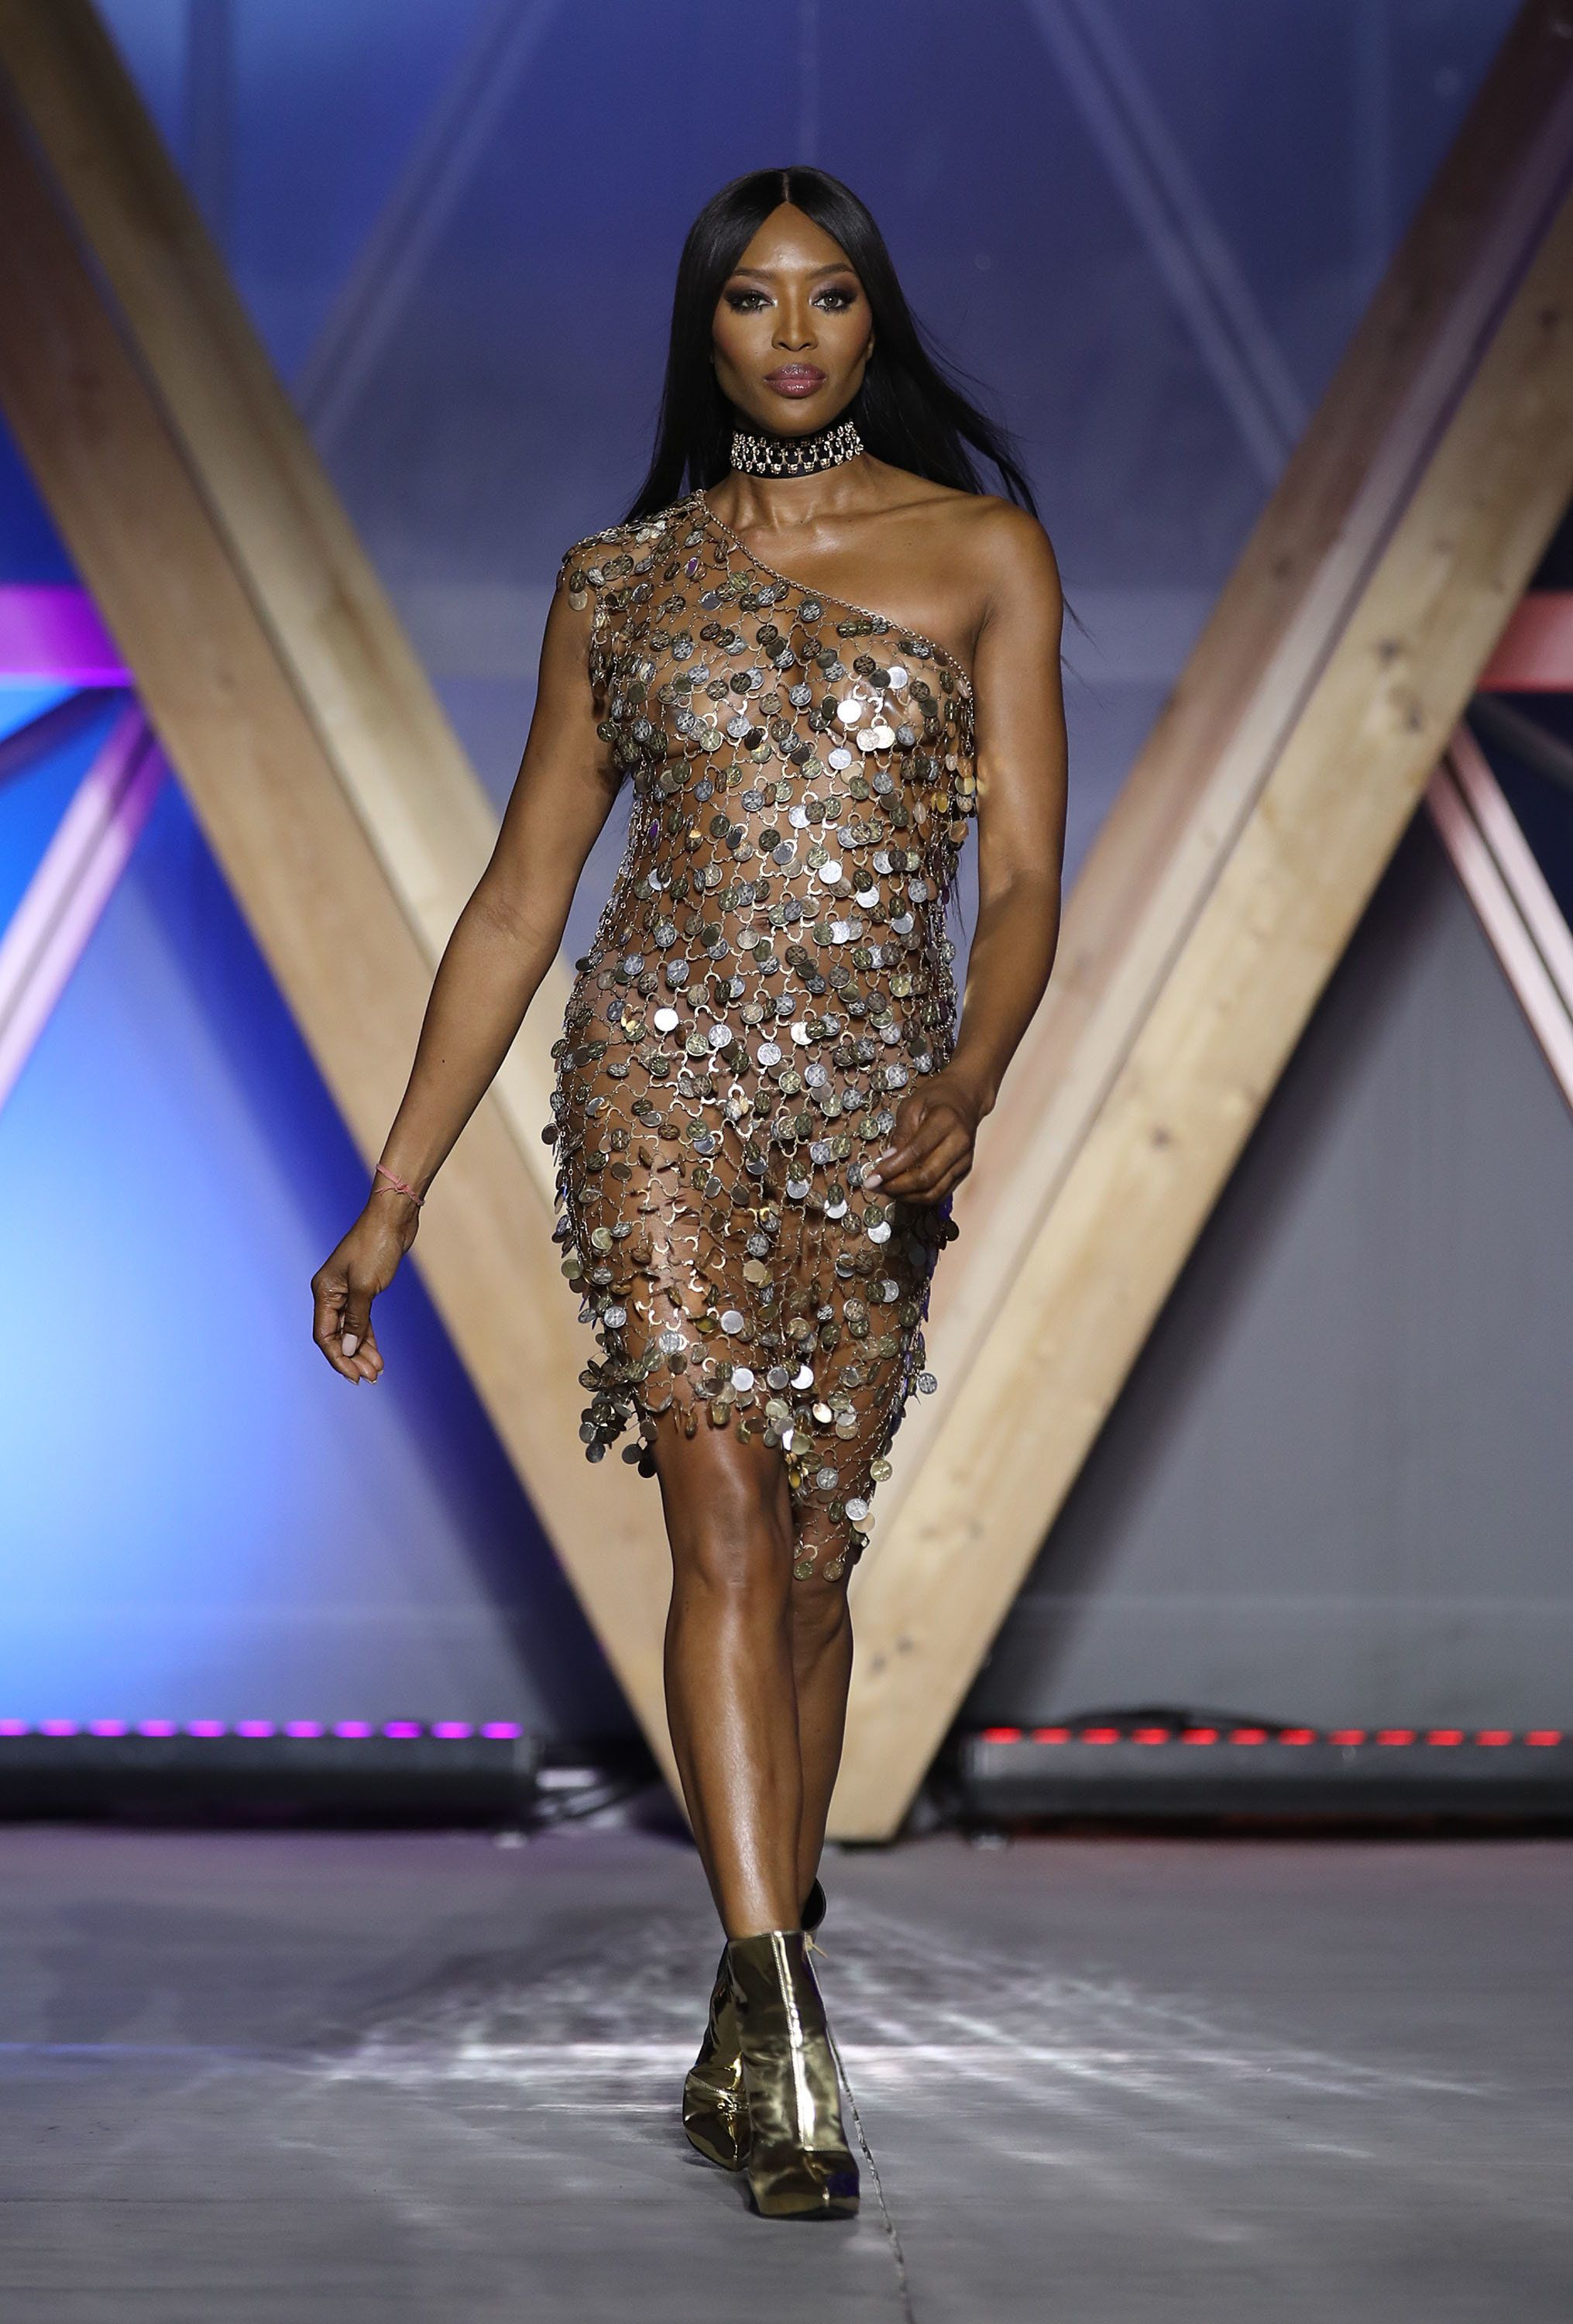 Walking the runway at the Fashion For Relief show during the Cannes Film Festival.